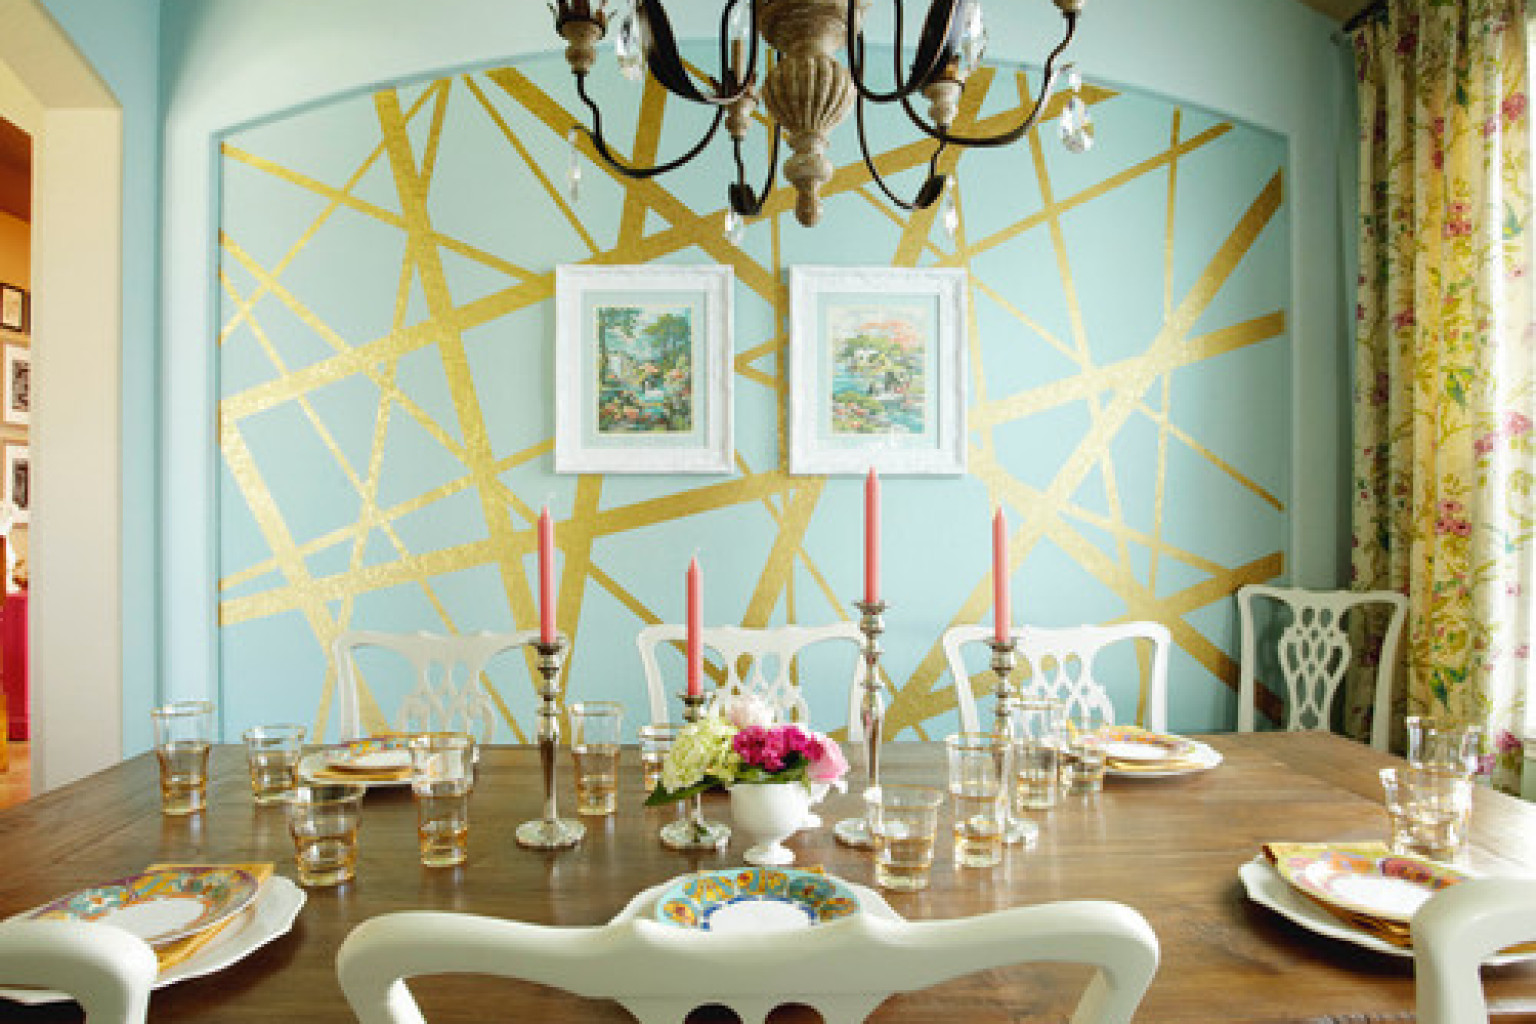 8 incredible interior paint ideas from real homes that turn a wall into a masterpiece photos huffpost - Interior Wall Painting Designs